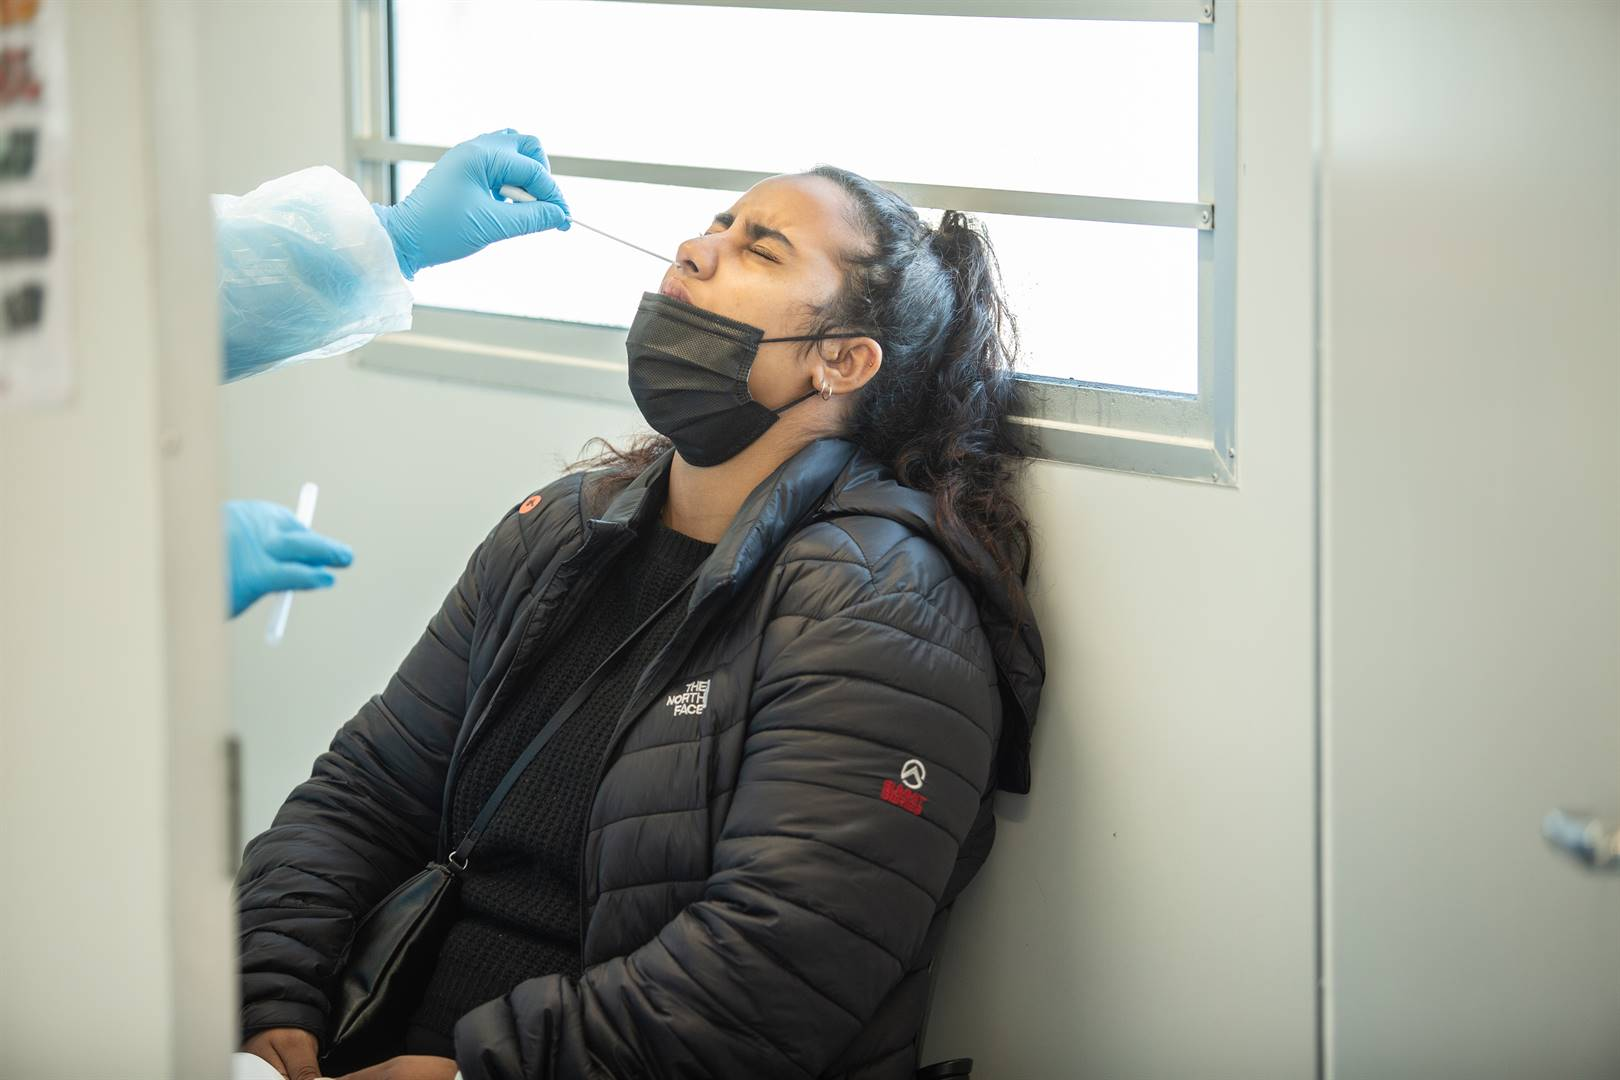 A woman takes a Covid-19 test at Bothasig Community Day Centre in Cape Town. South Africa is currently experiencing the third wave of the Covid-19 pandemic. Photo: Misha Jordaan/Gallo Images